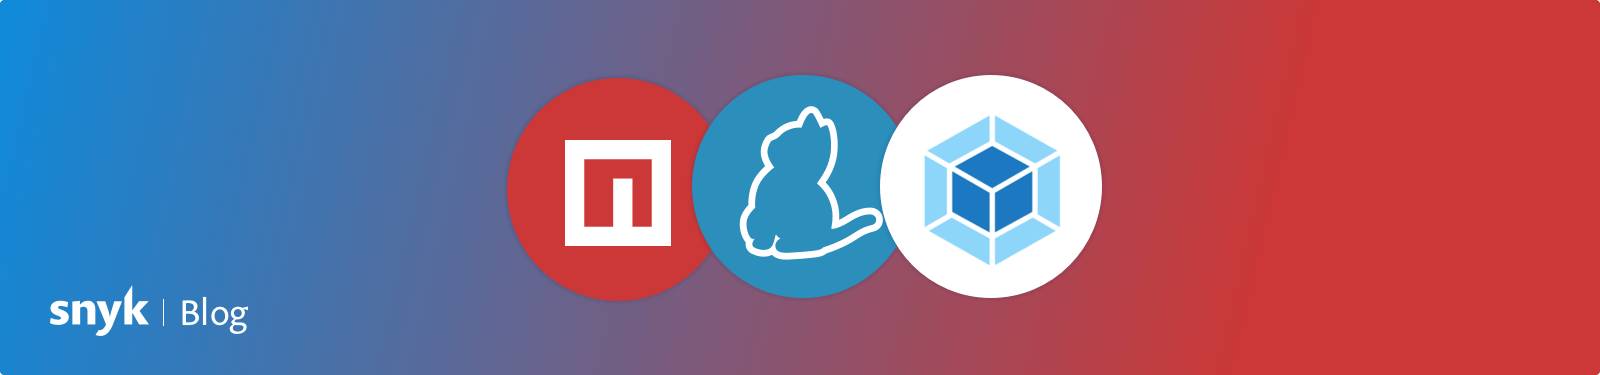 Bower is dead, long live npm. And Yarn. And webpack.